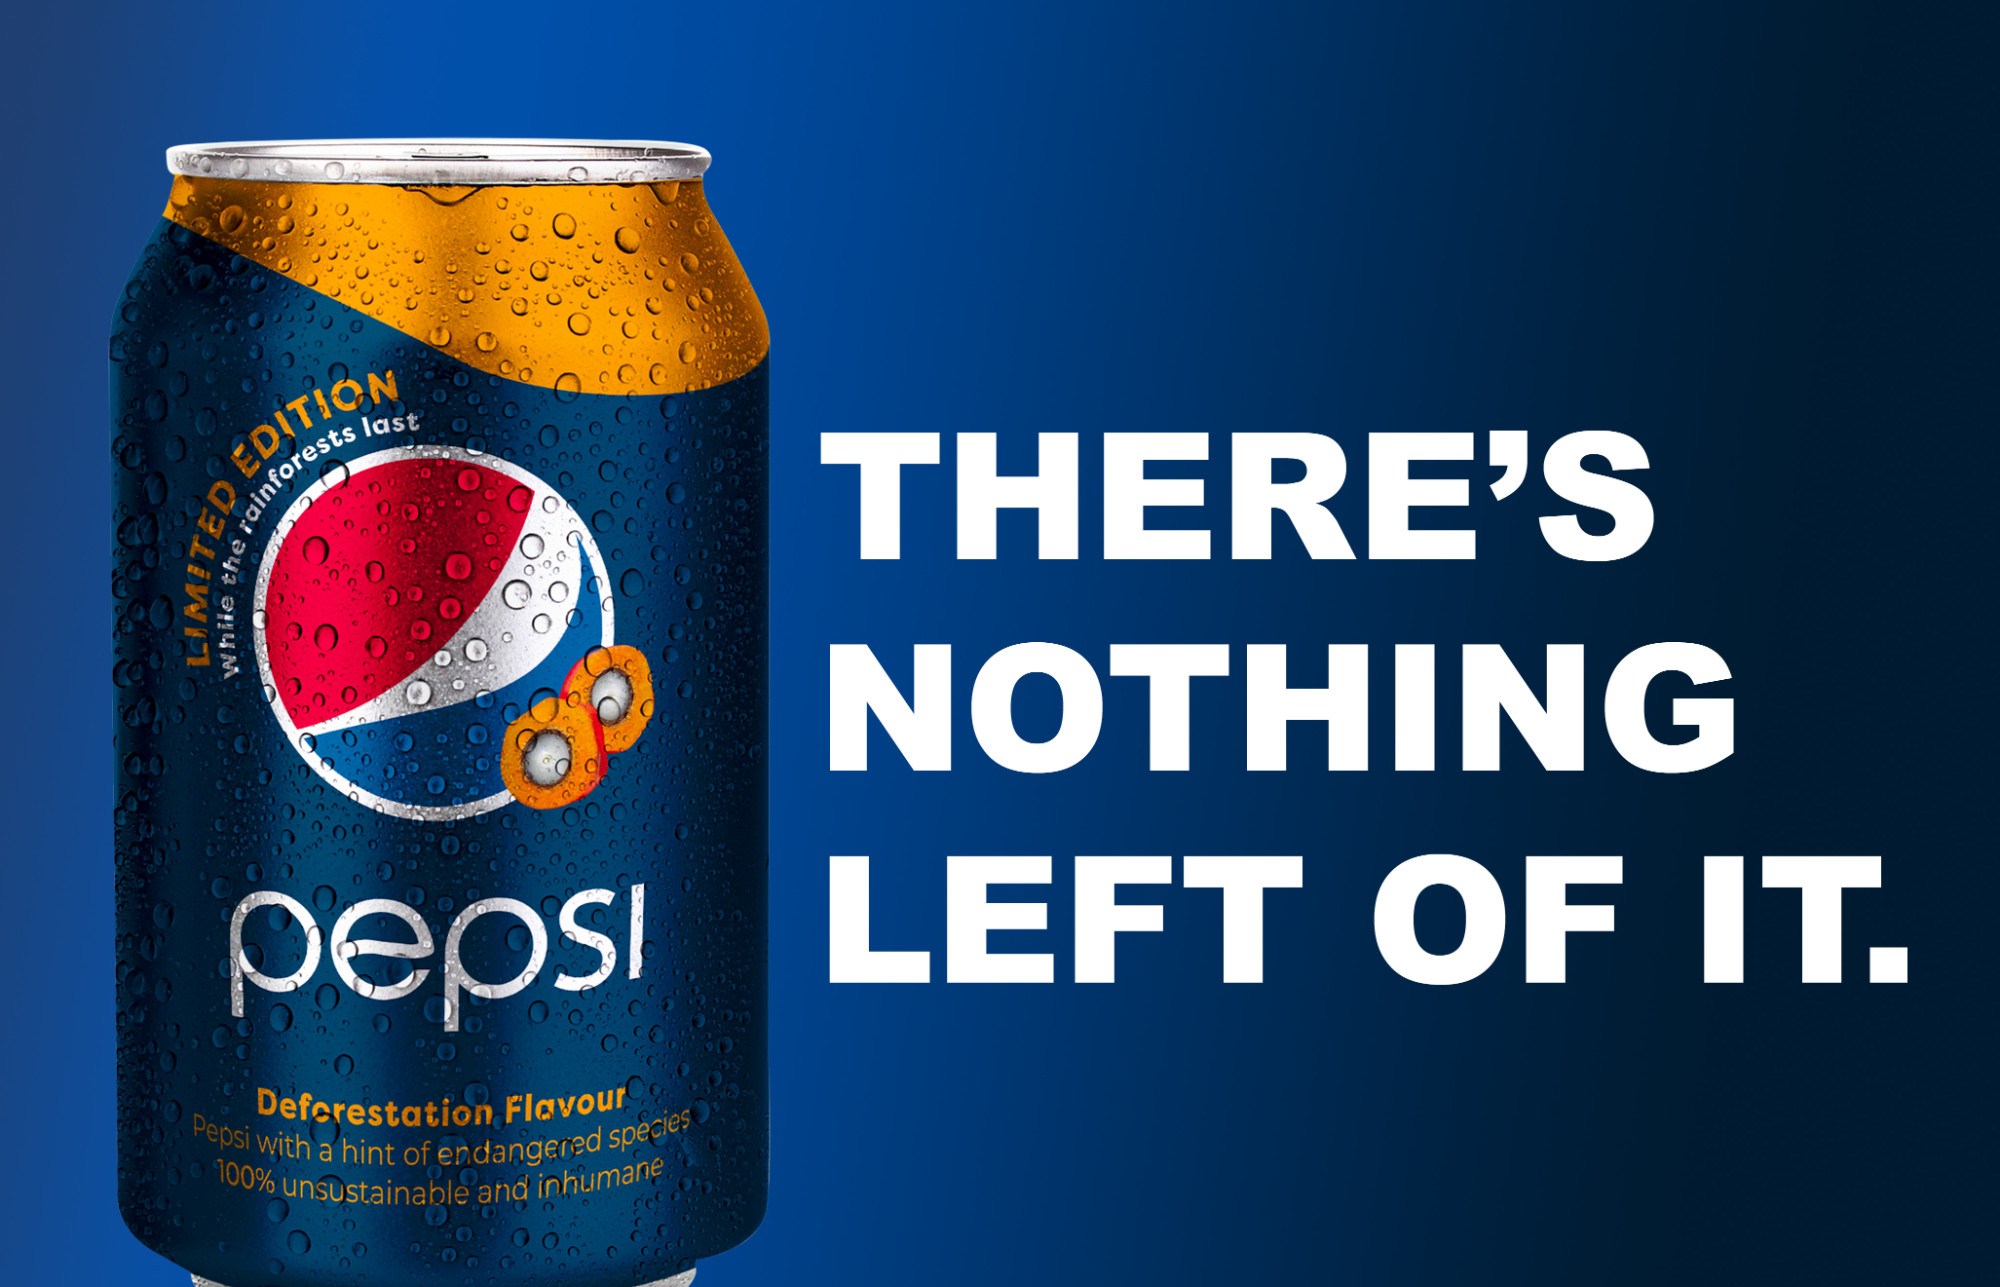 PepsiCo are one of the many large corporations contributing to the brutal destruction of rainforests. Using palm oil in every can of Pepsi, various endangered species are losing their homes and families for the cost of a refreshing, fizzy drink. Bryony Smart.